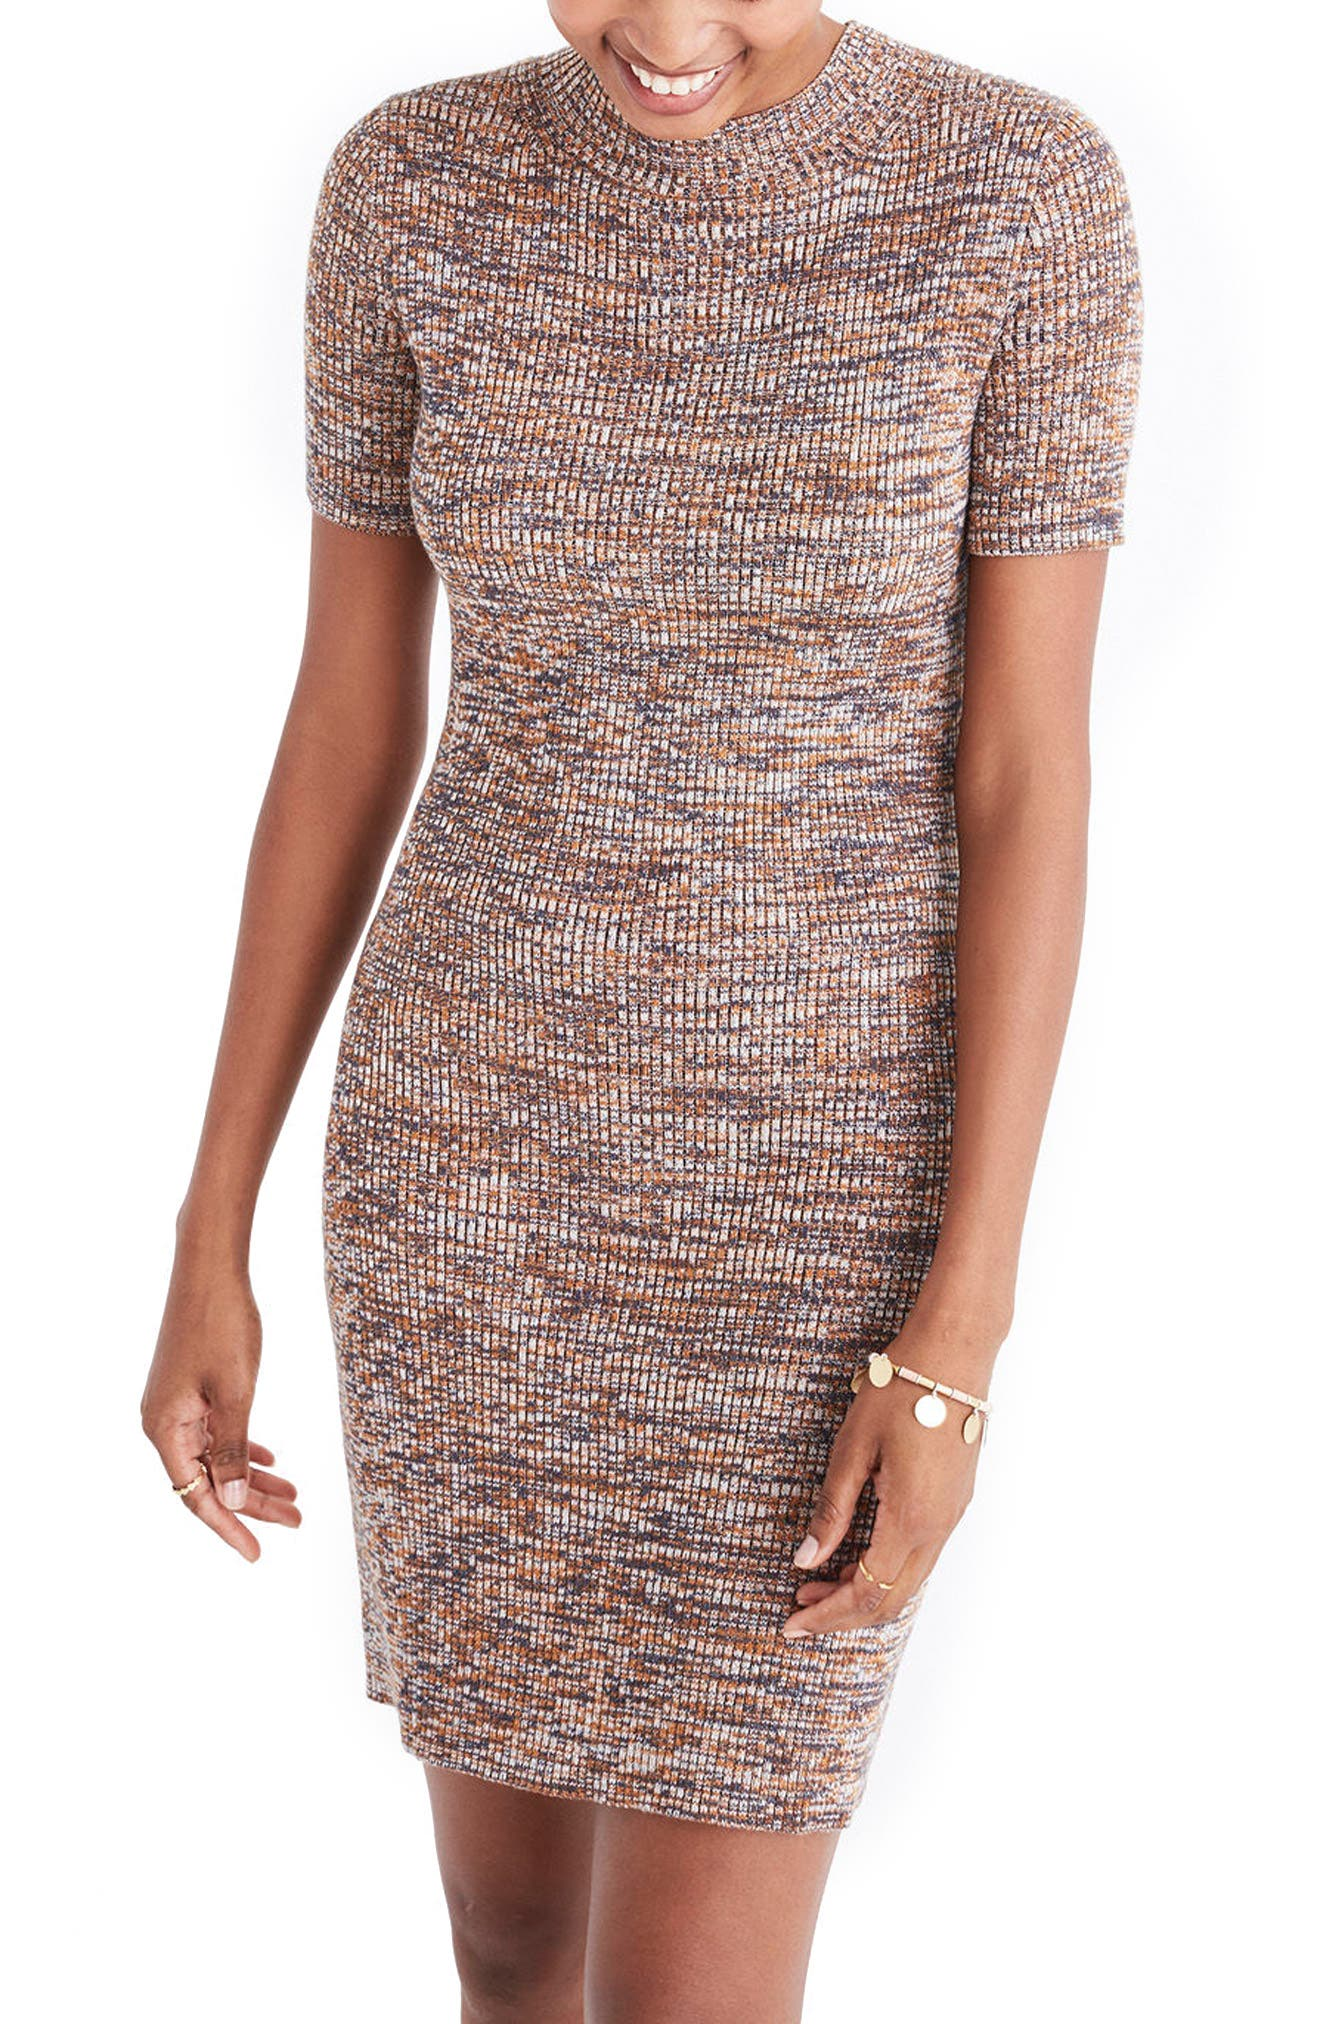 Madewell Marled Mock Neck Sweater Dress